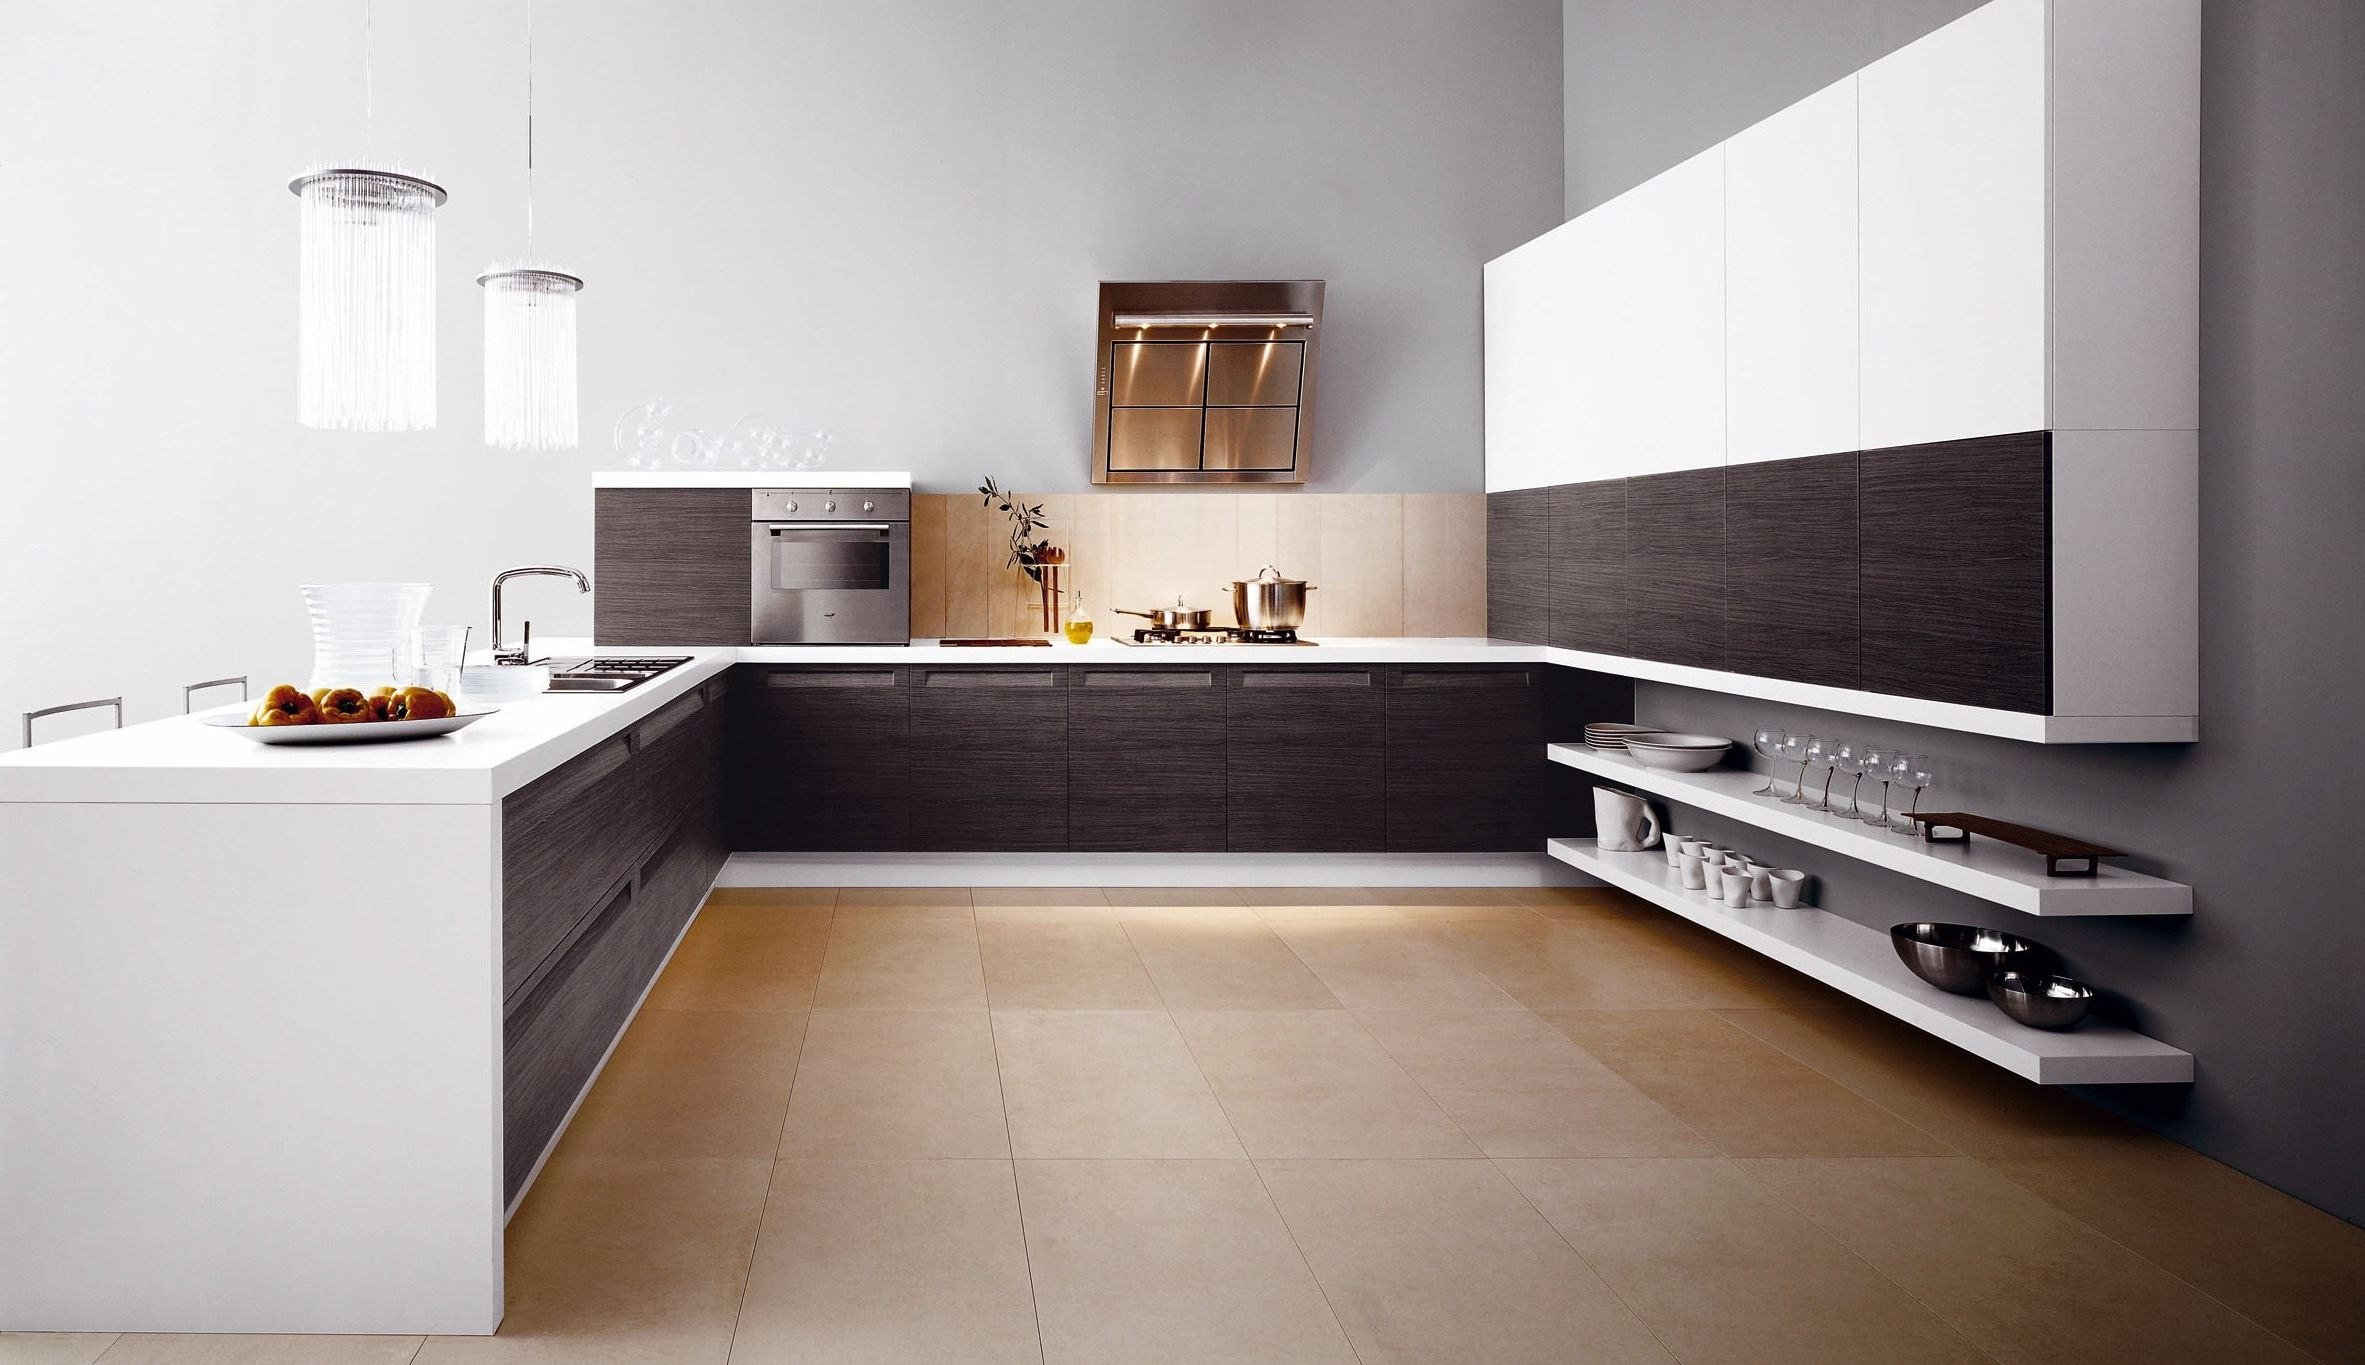 Italian kitchen design ideas midcityeast for Italian kitchen design